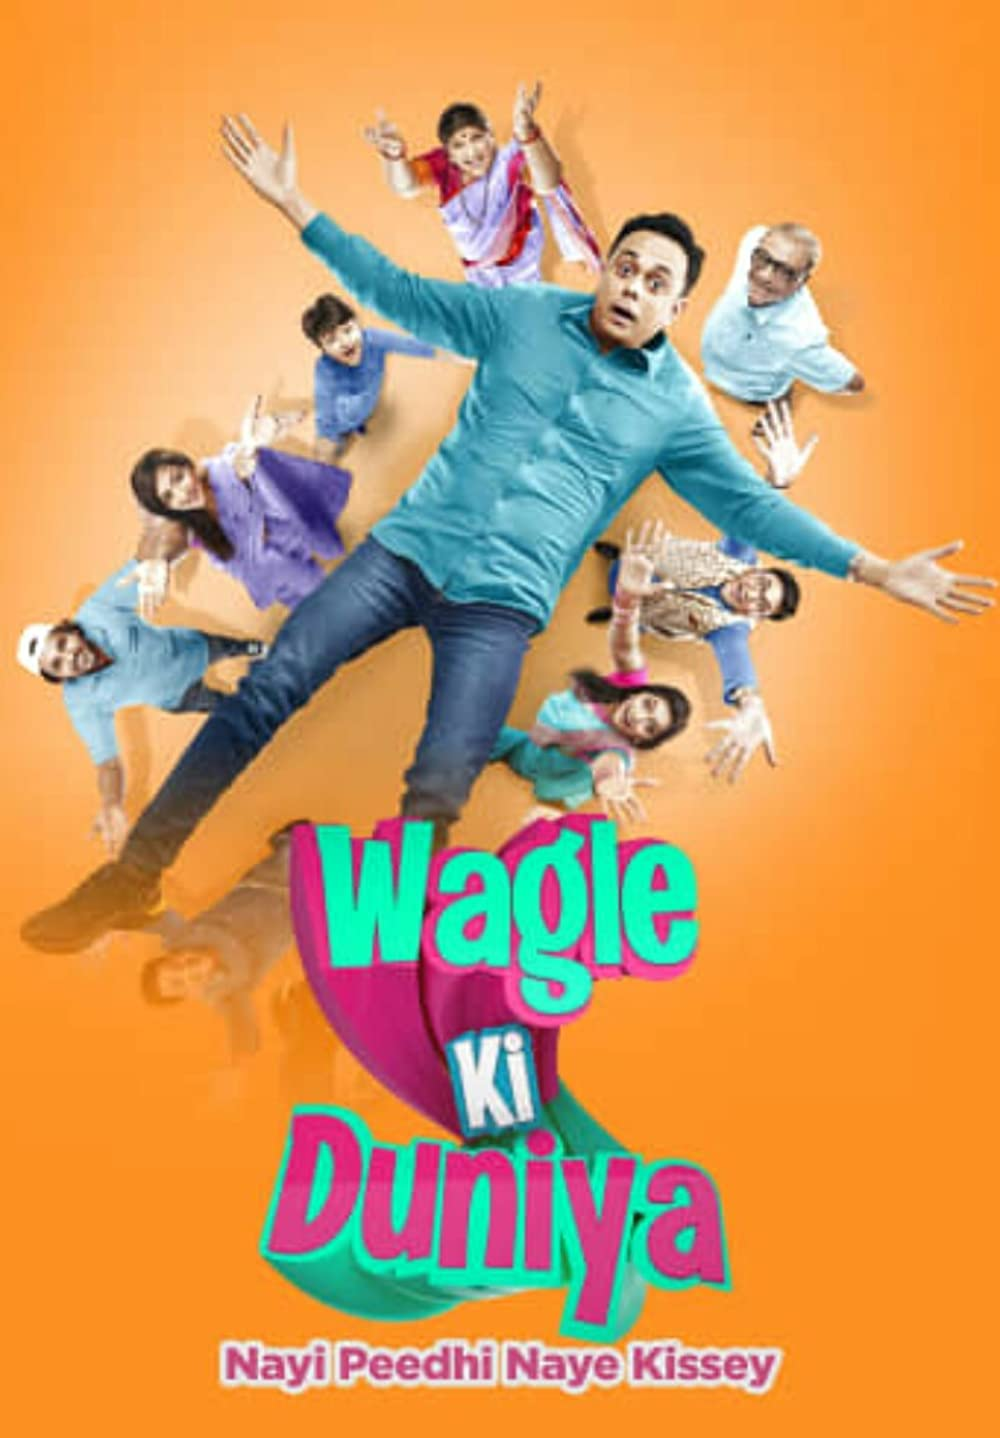 Wagle Ki Duniya 2021 S01 Hindi Complete Sonyliv Original Web Series 720p HDRip 1.8GB Download